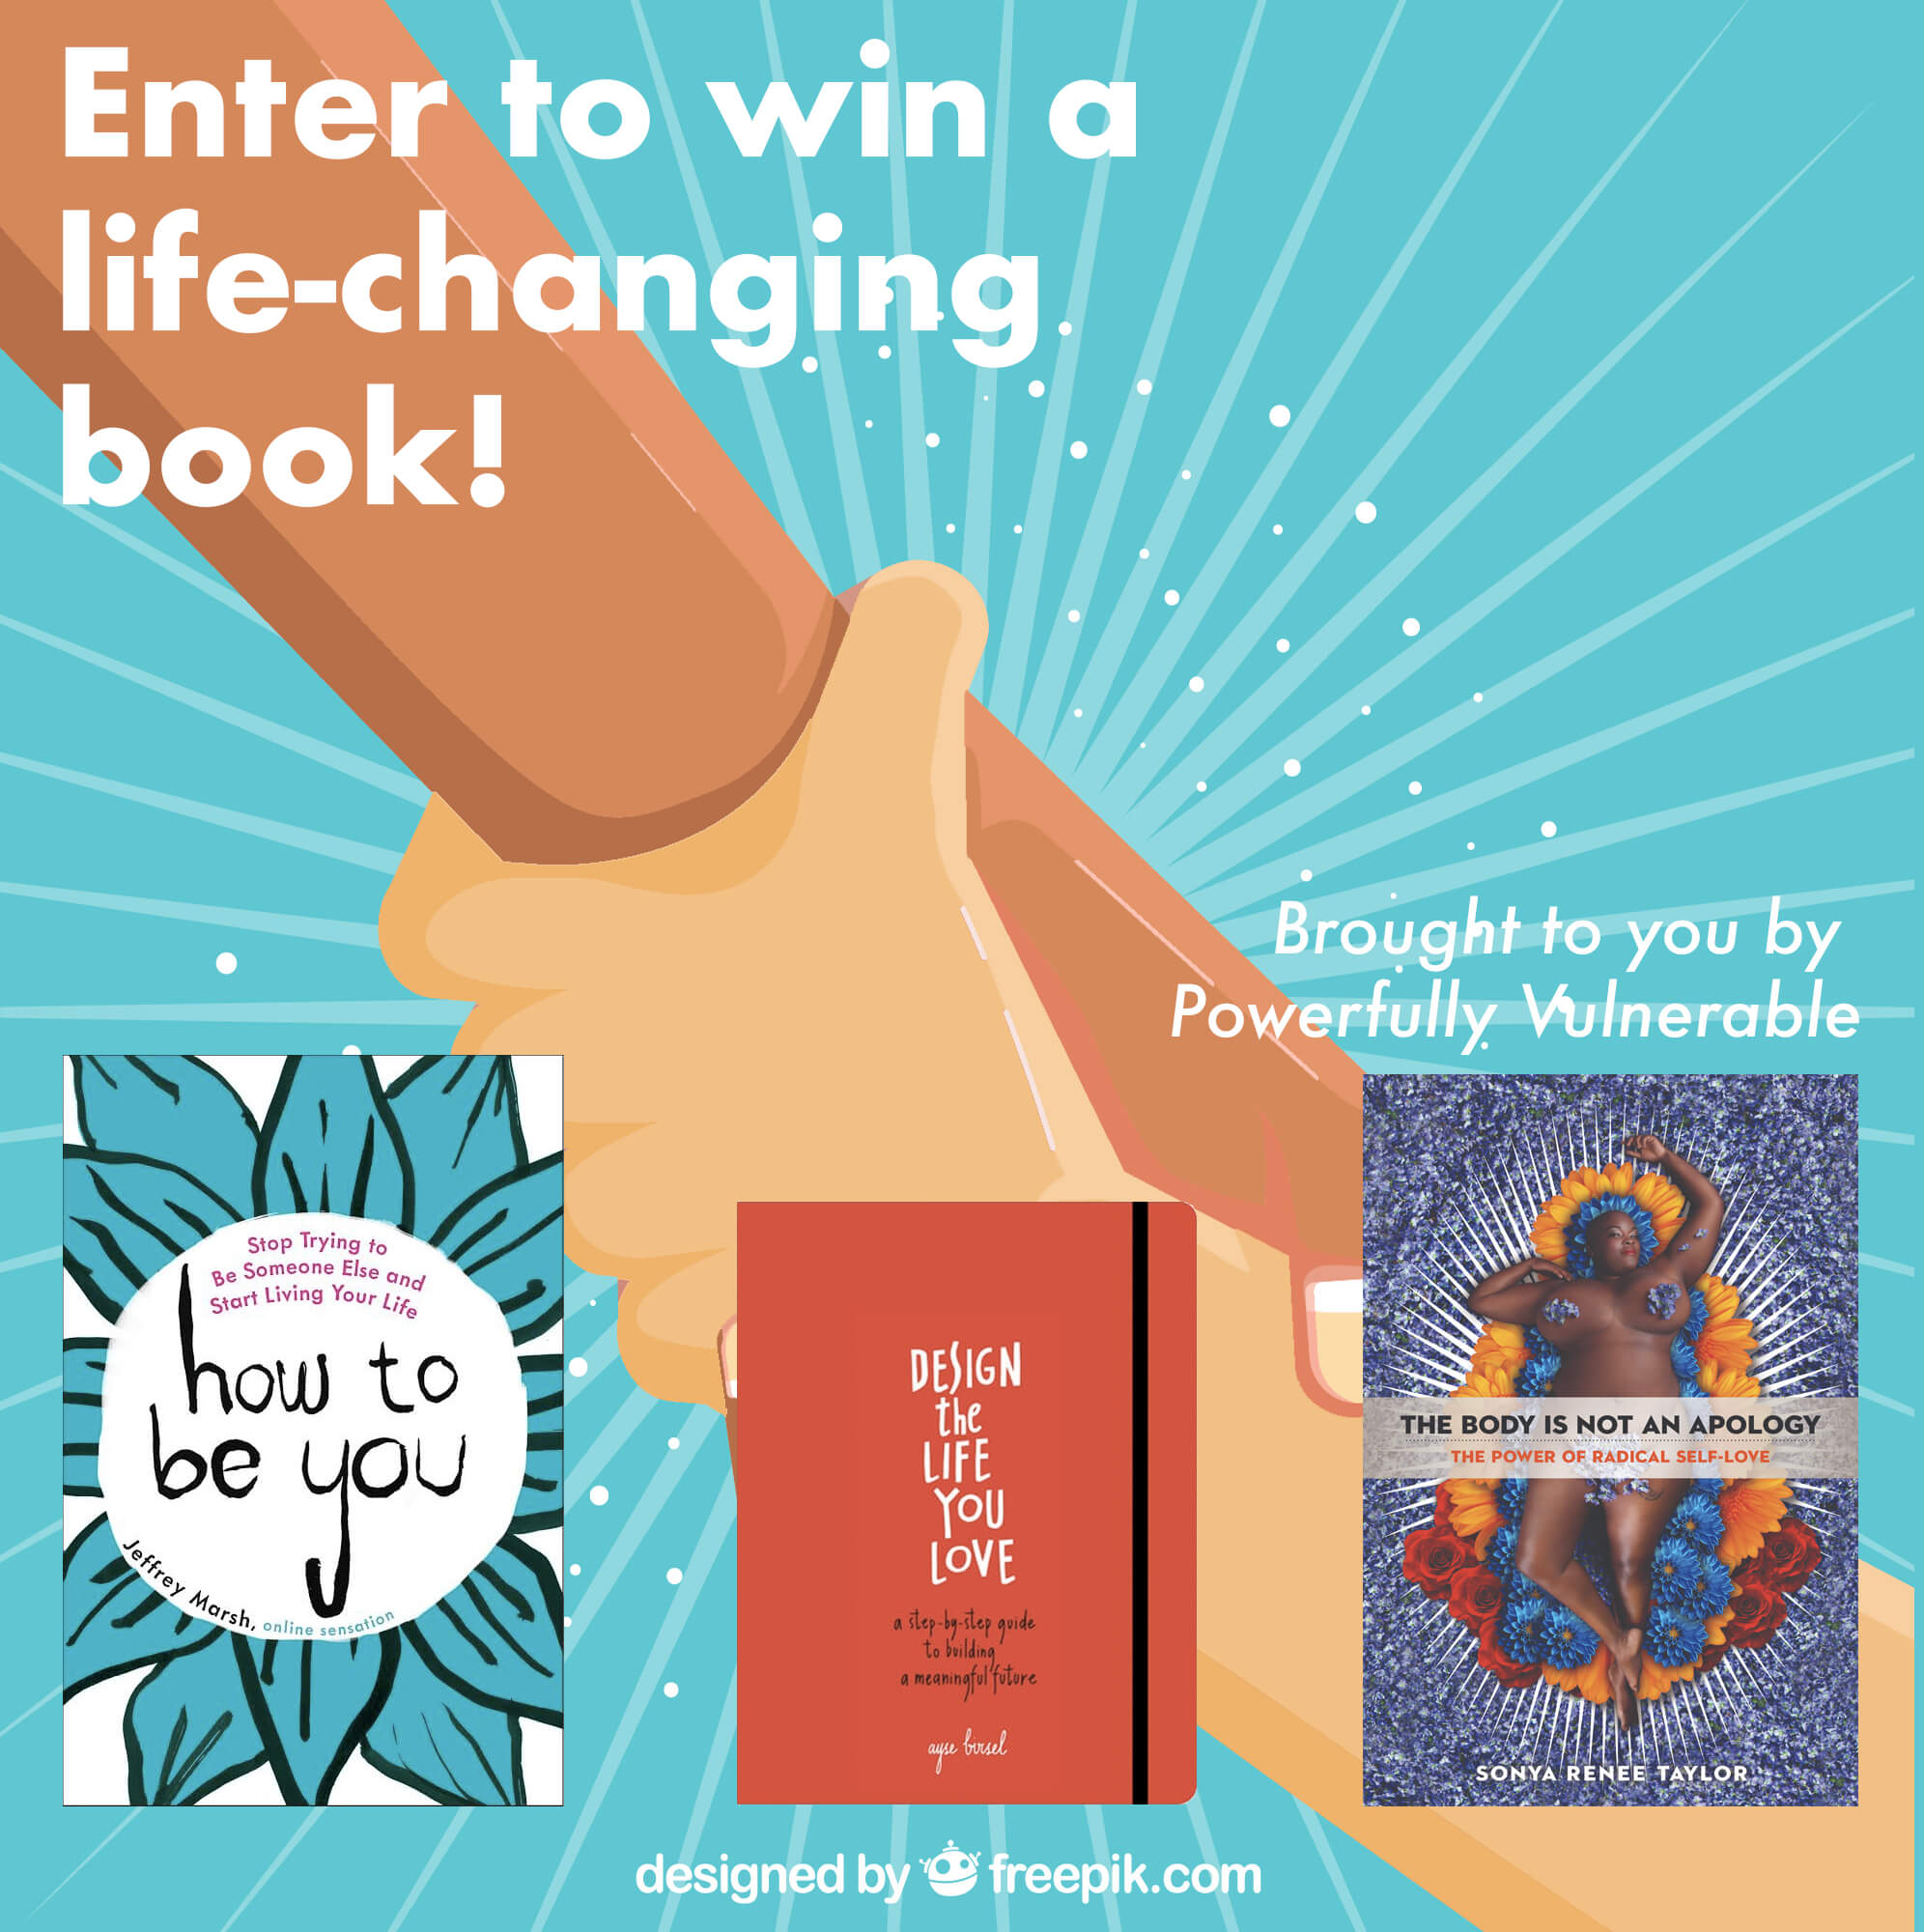 [Enter to win a life-changing book! Brought to you by Powerfully Vulnerable.]